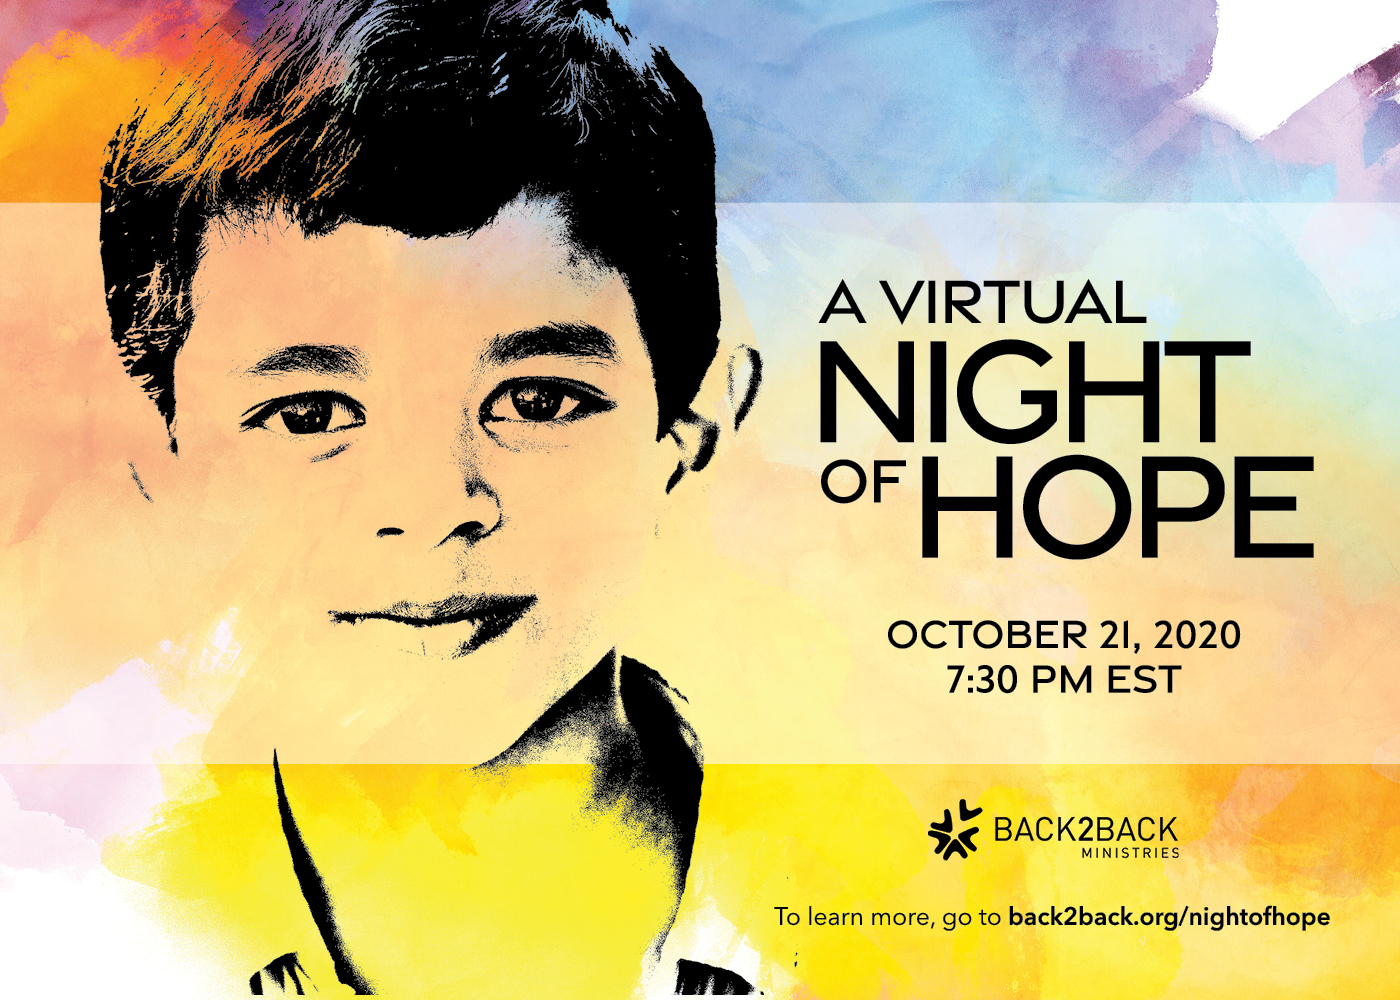 A Virtual Night of Hope Donation